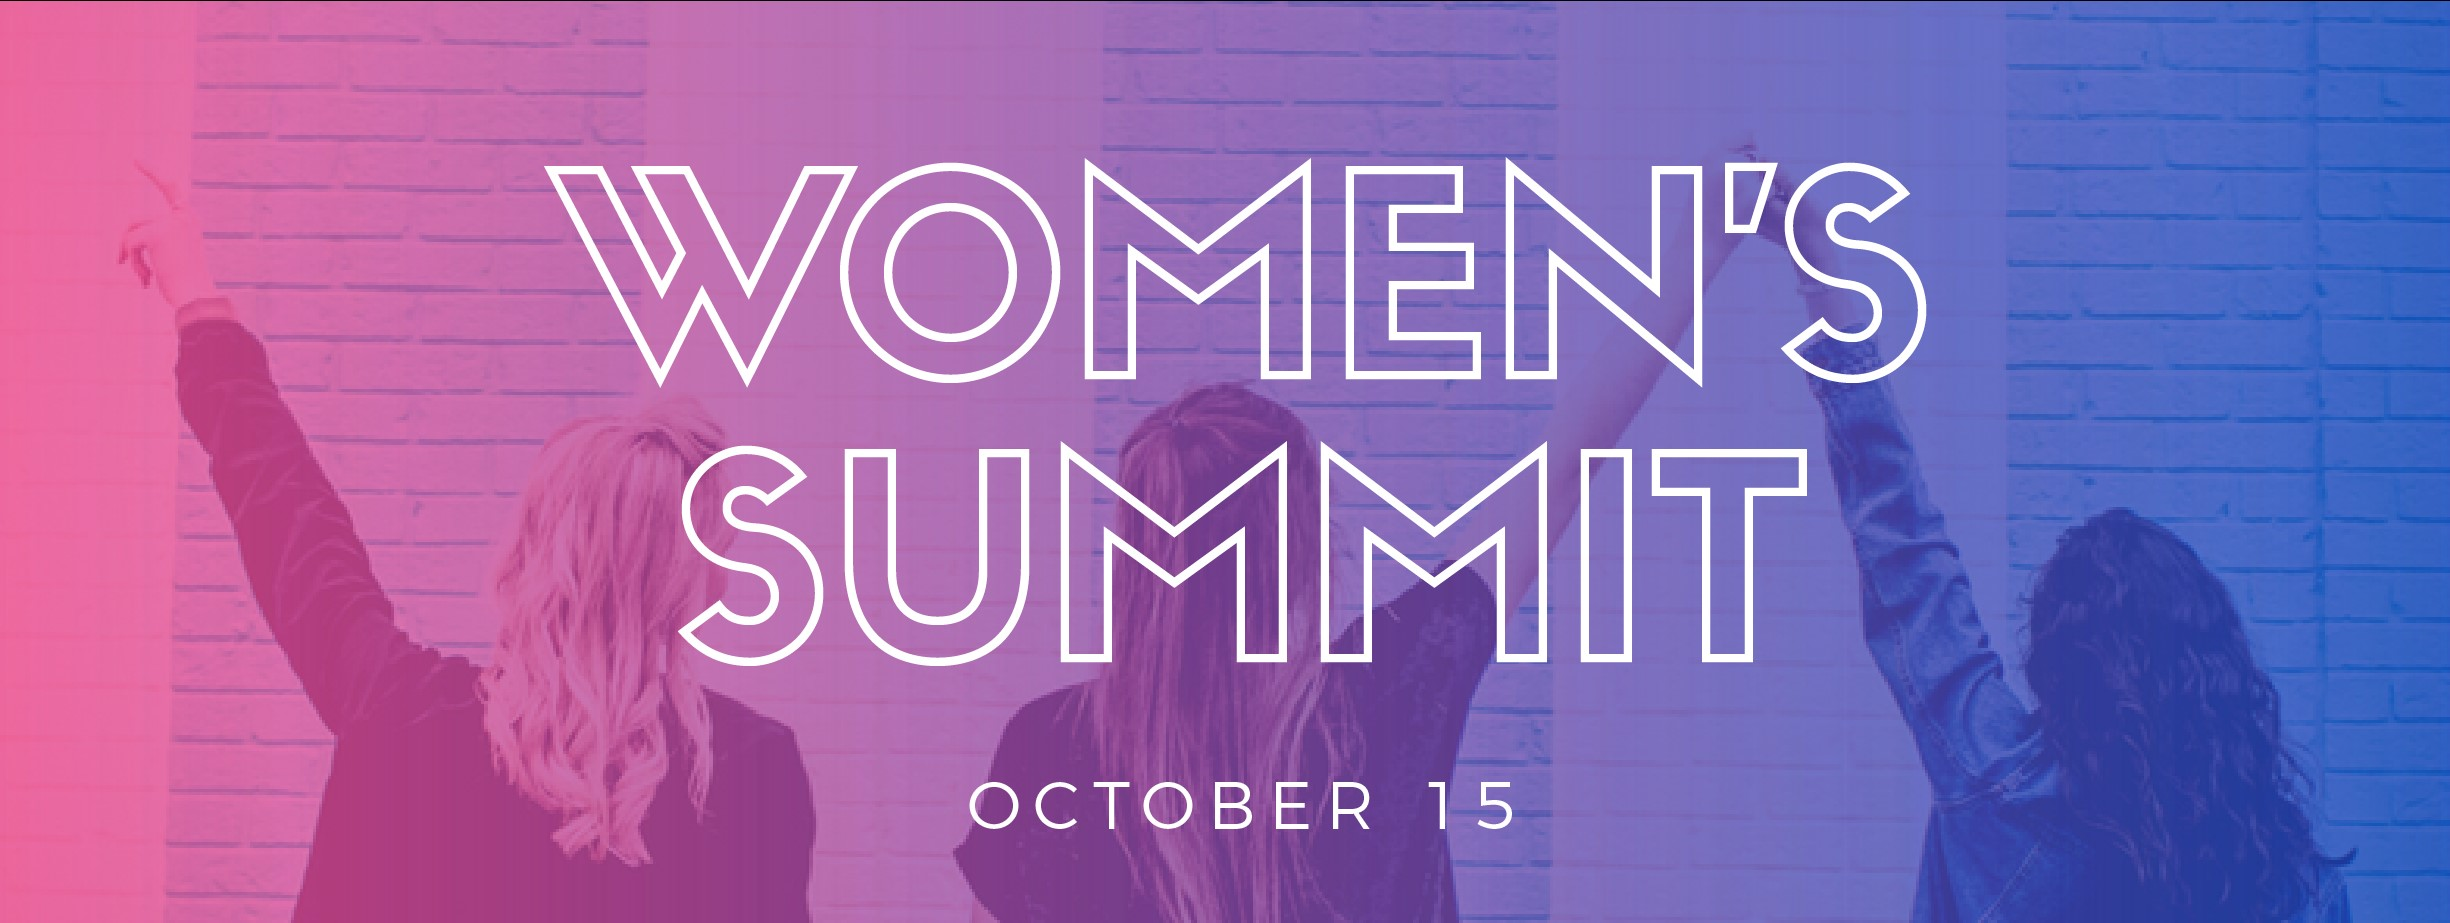 Womens Summit October 15